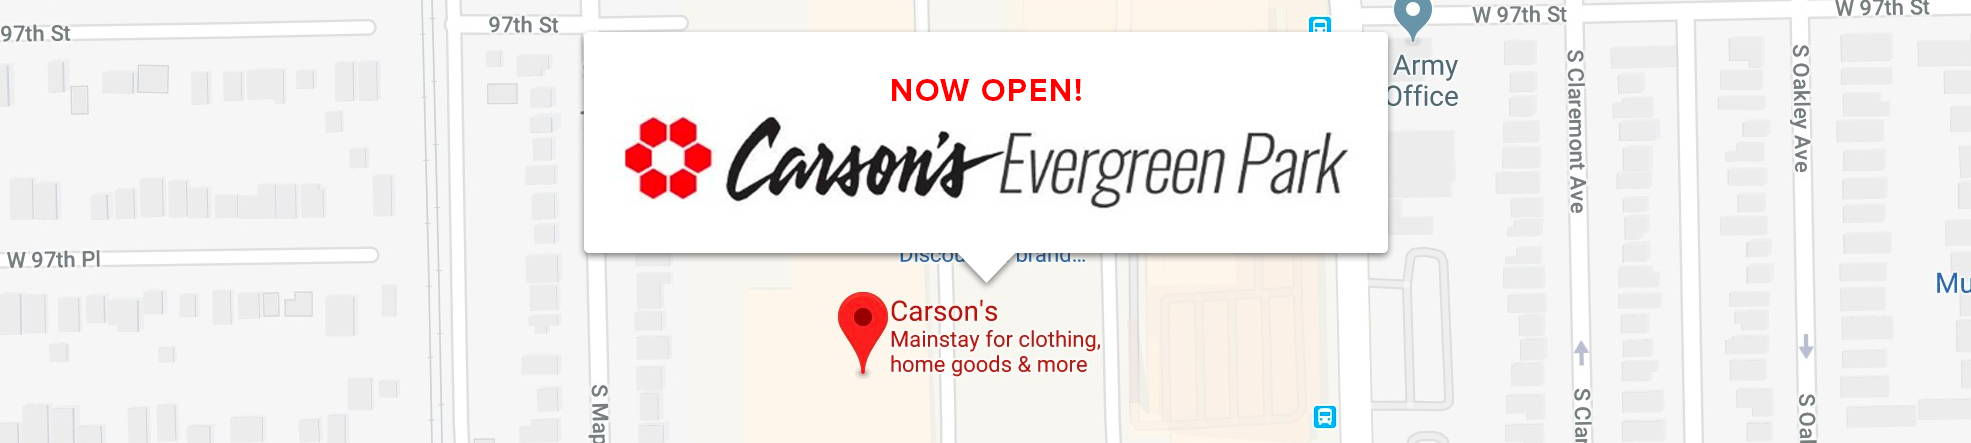 picture relating to Carsons in Store Coupons Printable named Carsons Evergreen Park